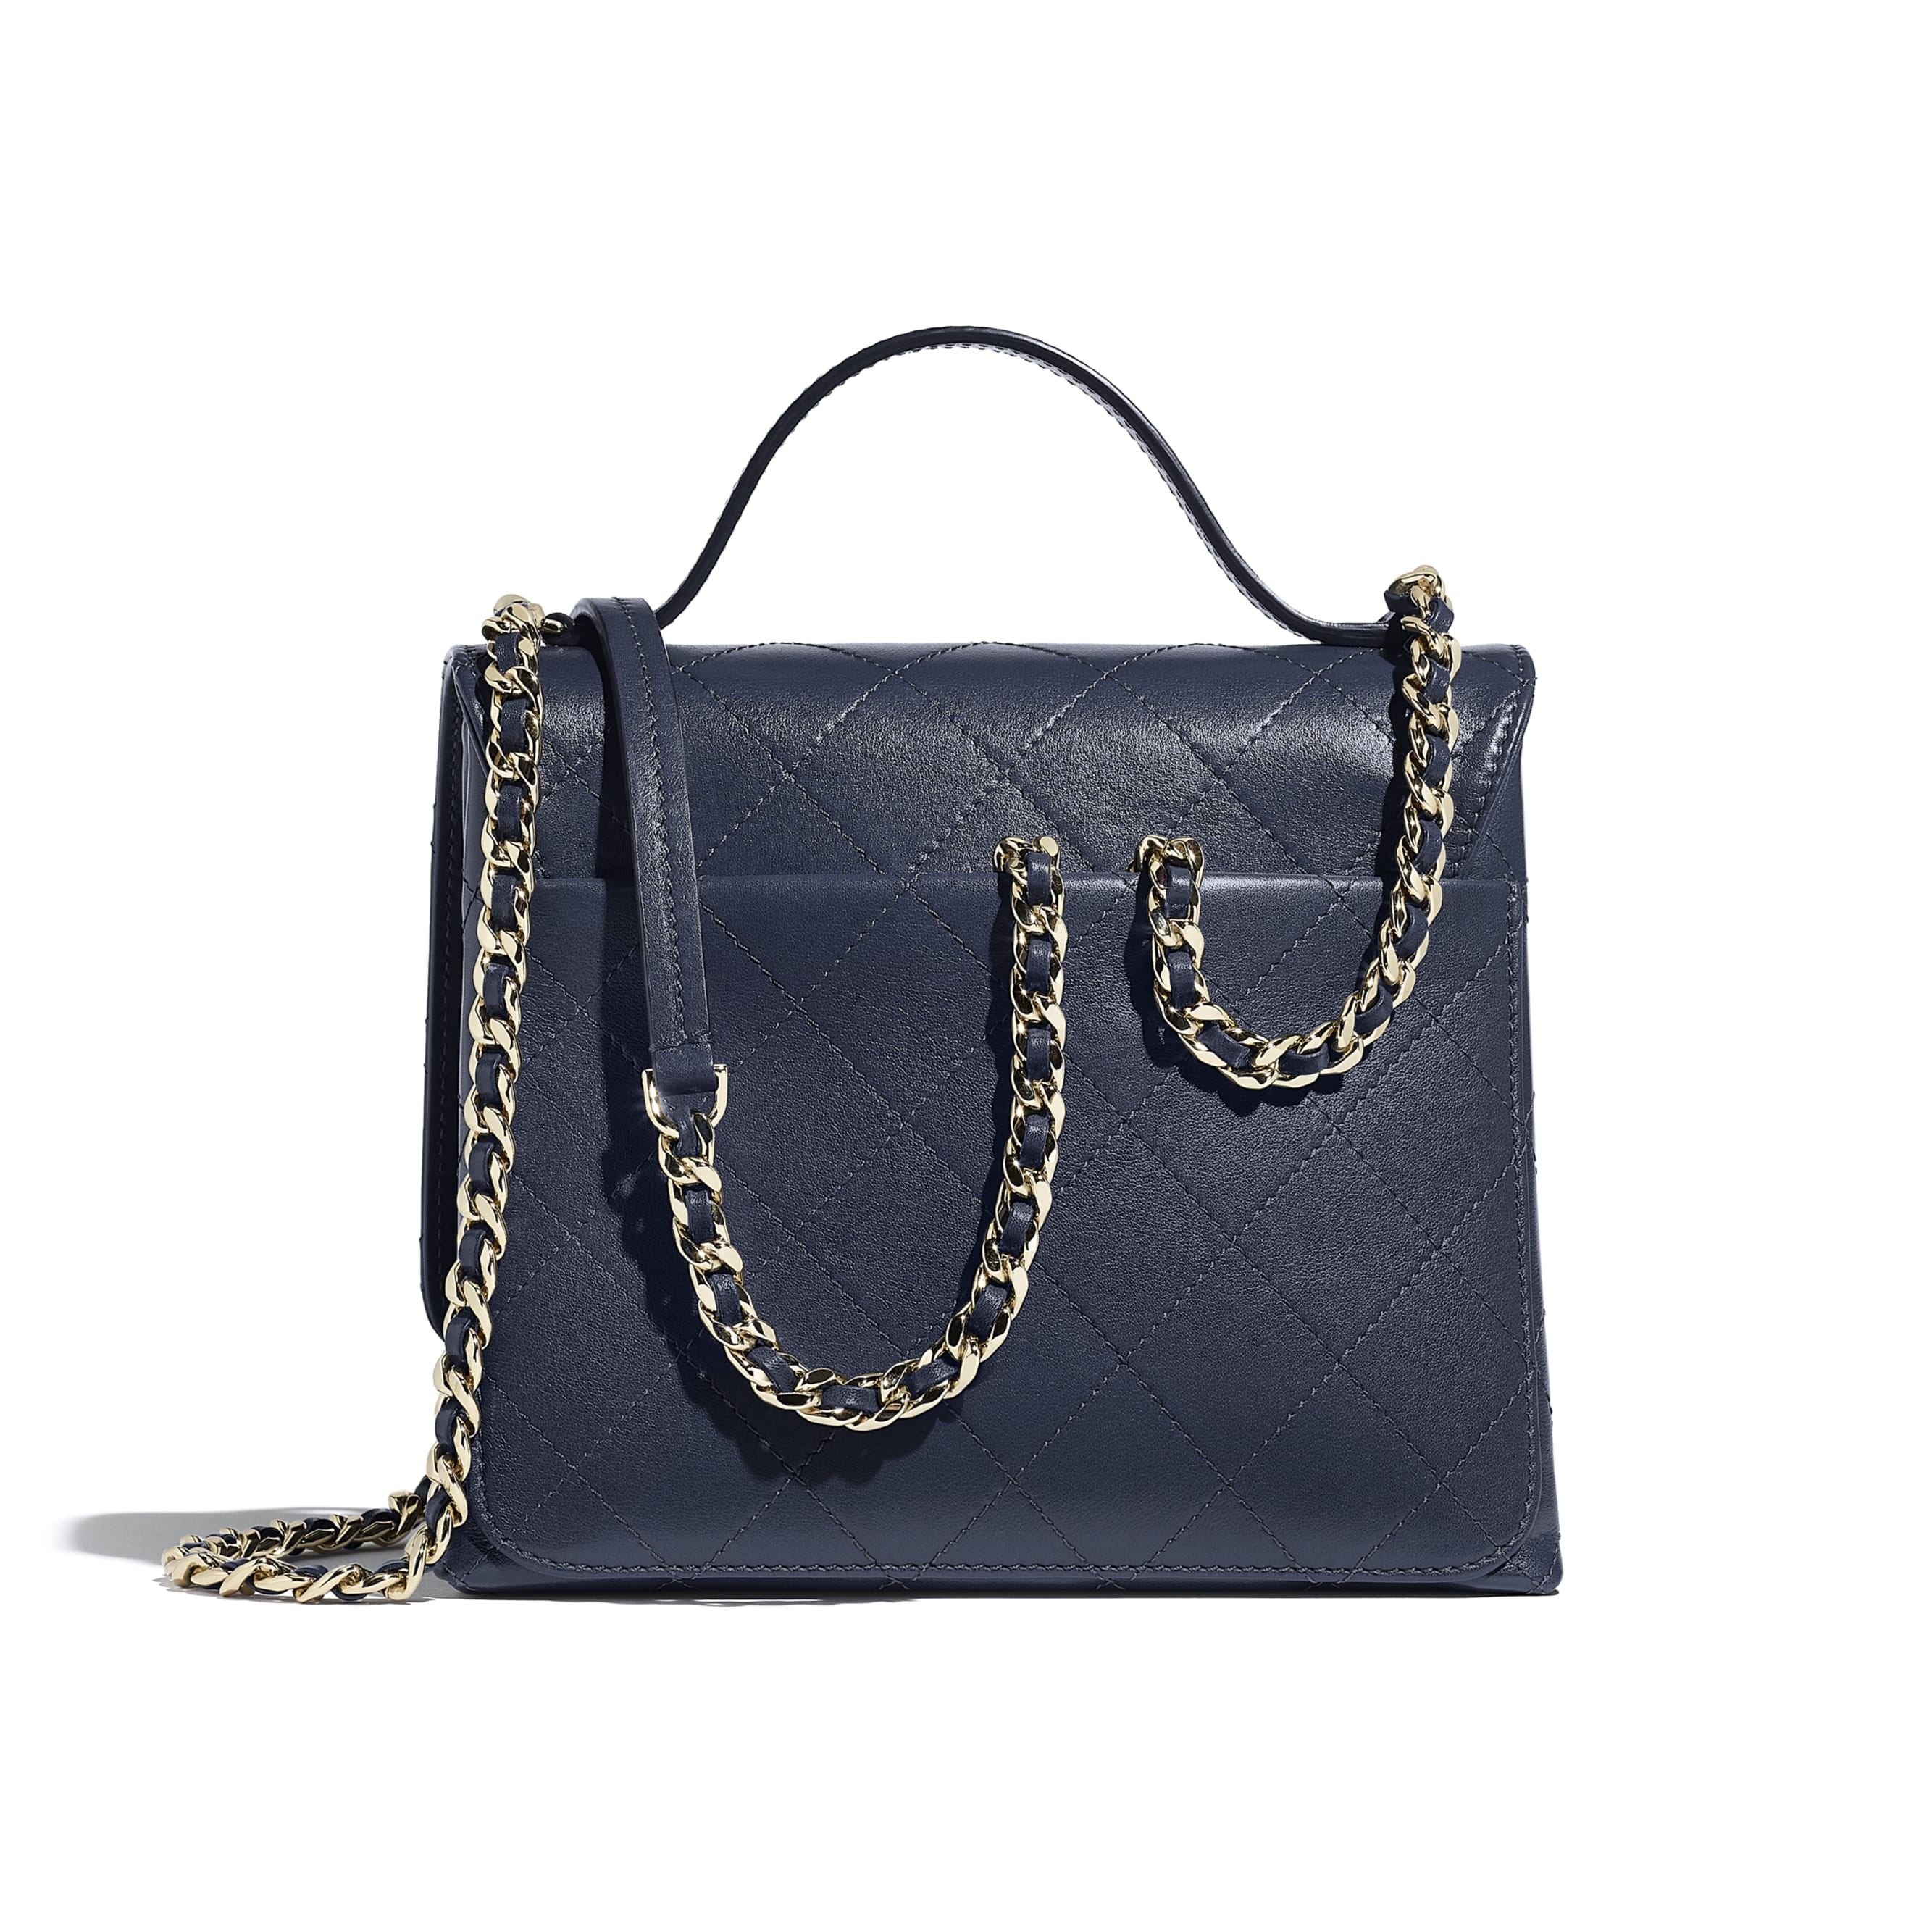 Flap Bag with Top Handle - Navy Blue - Calfskin & Gold-Tone Metal - Alternative view - see standard sized version